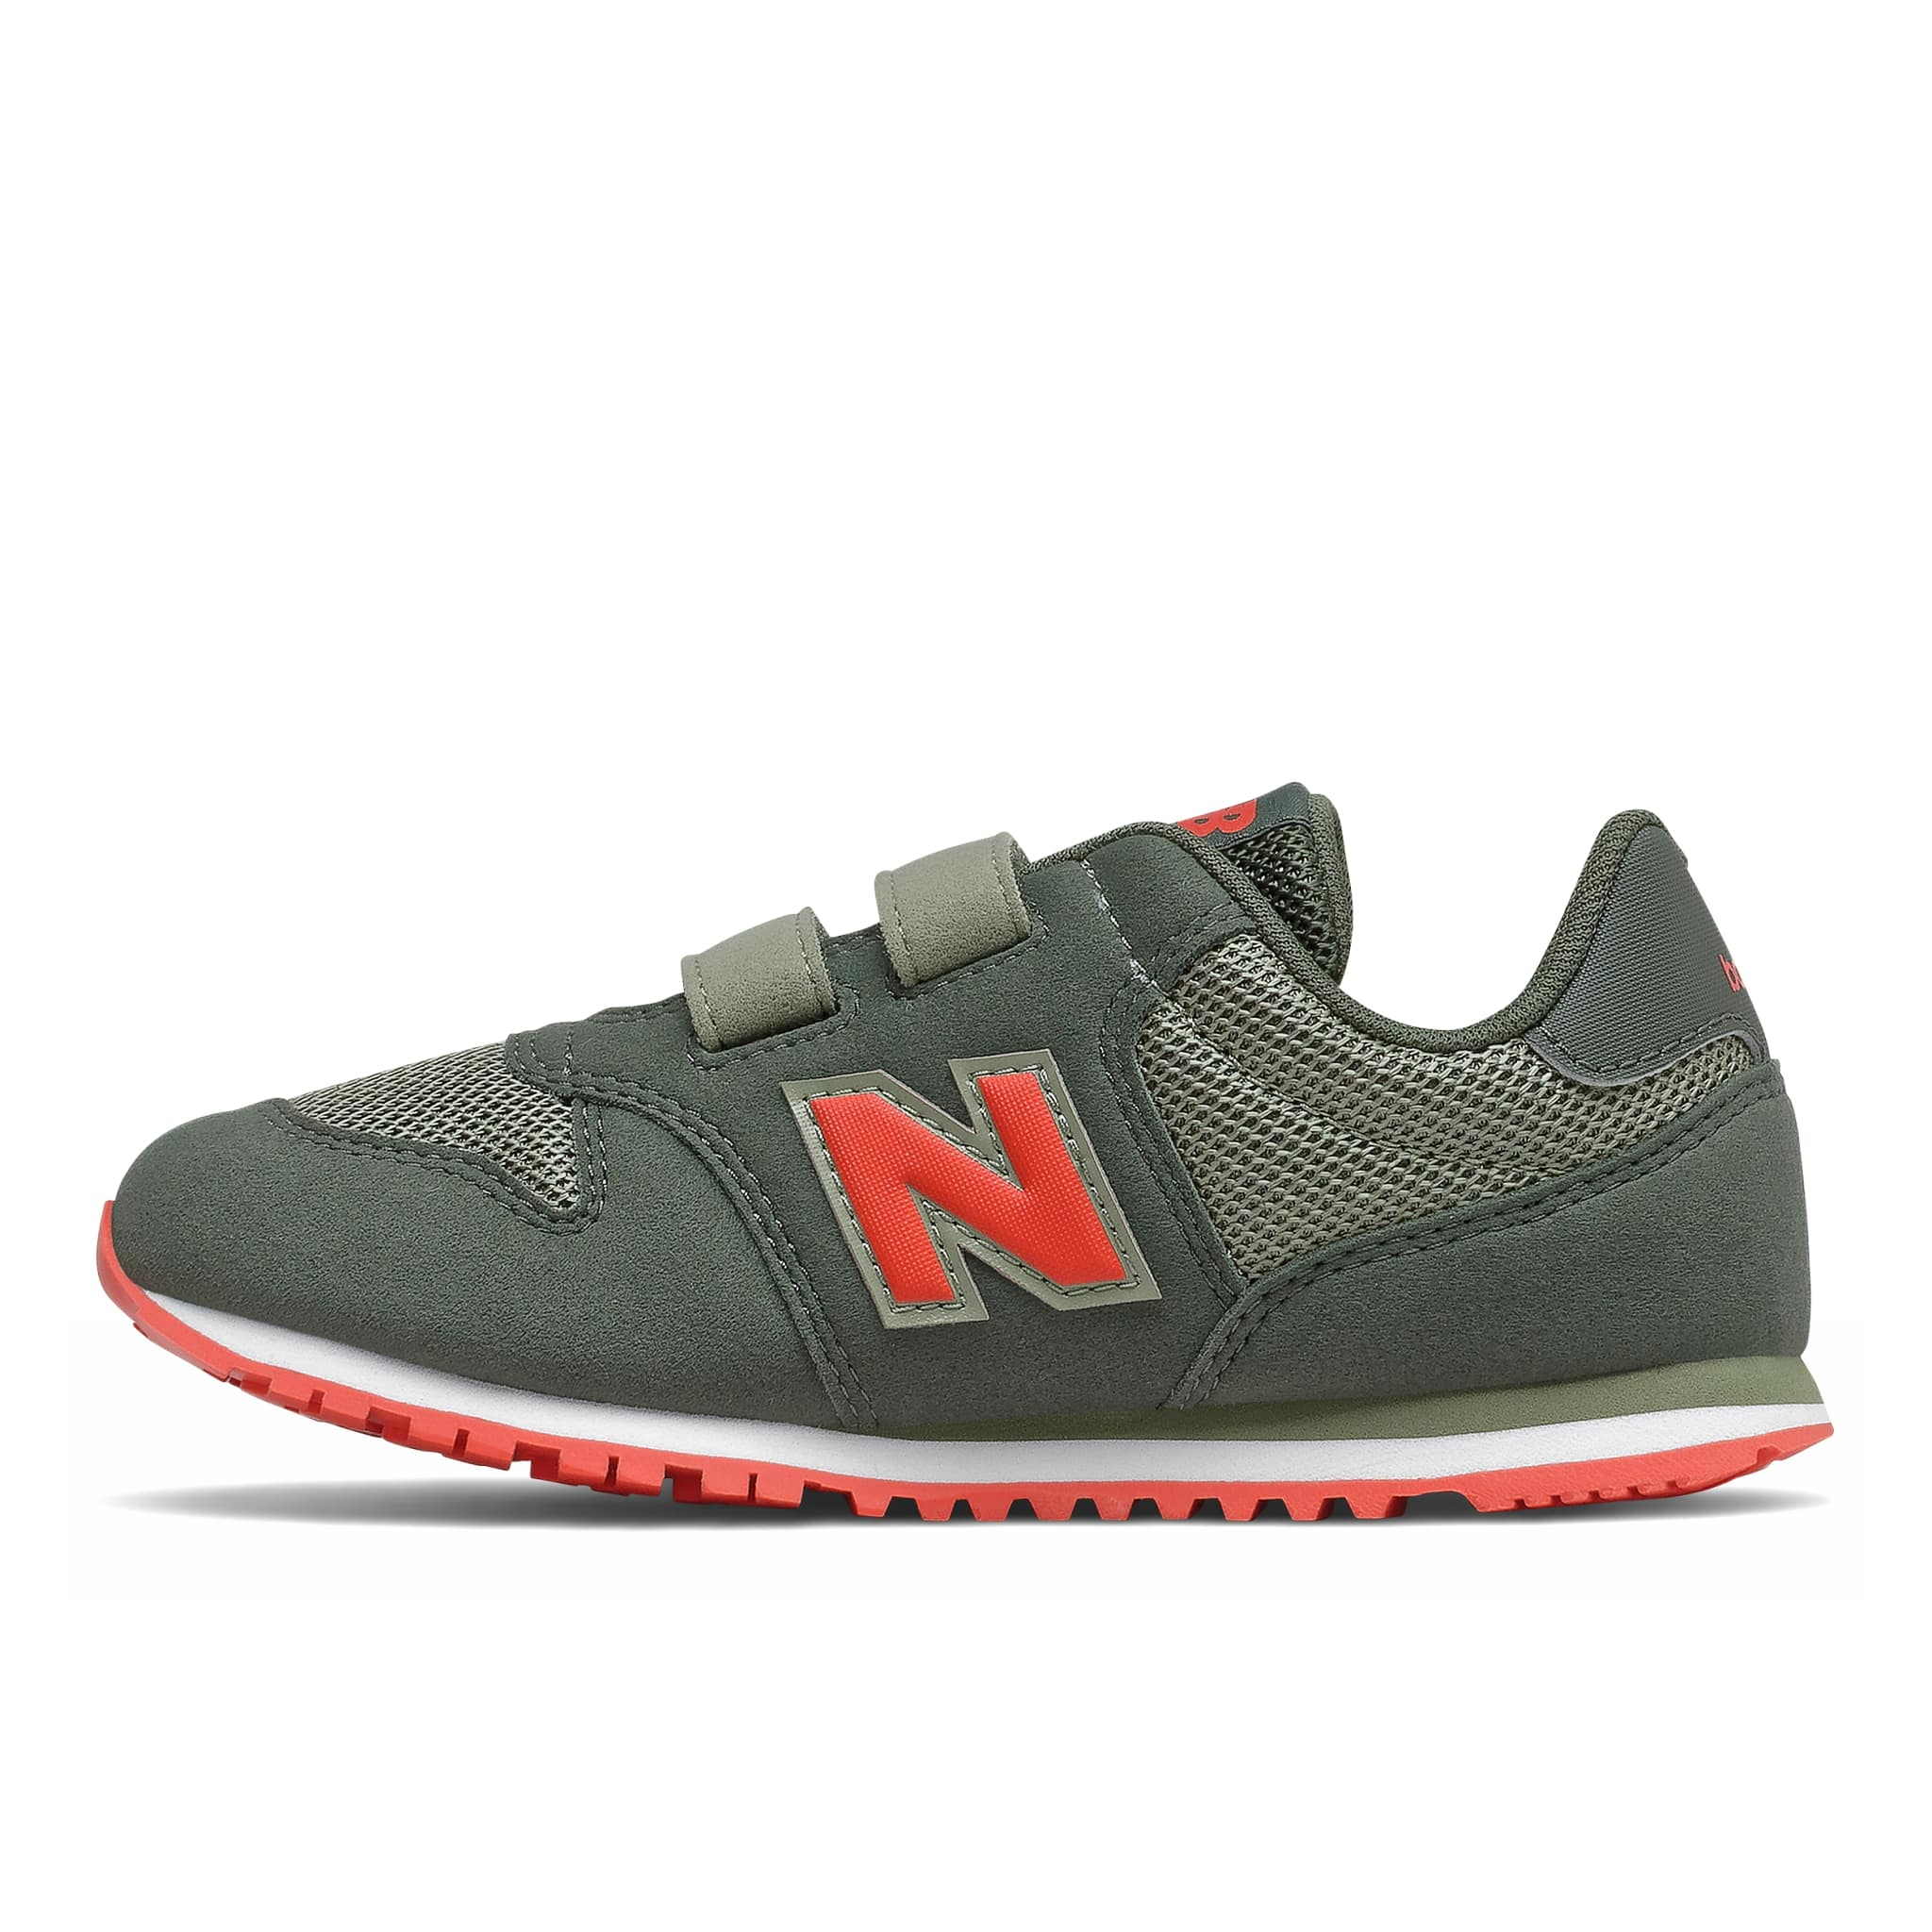 New Balance 500 sneakers, green, 30